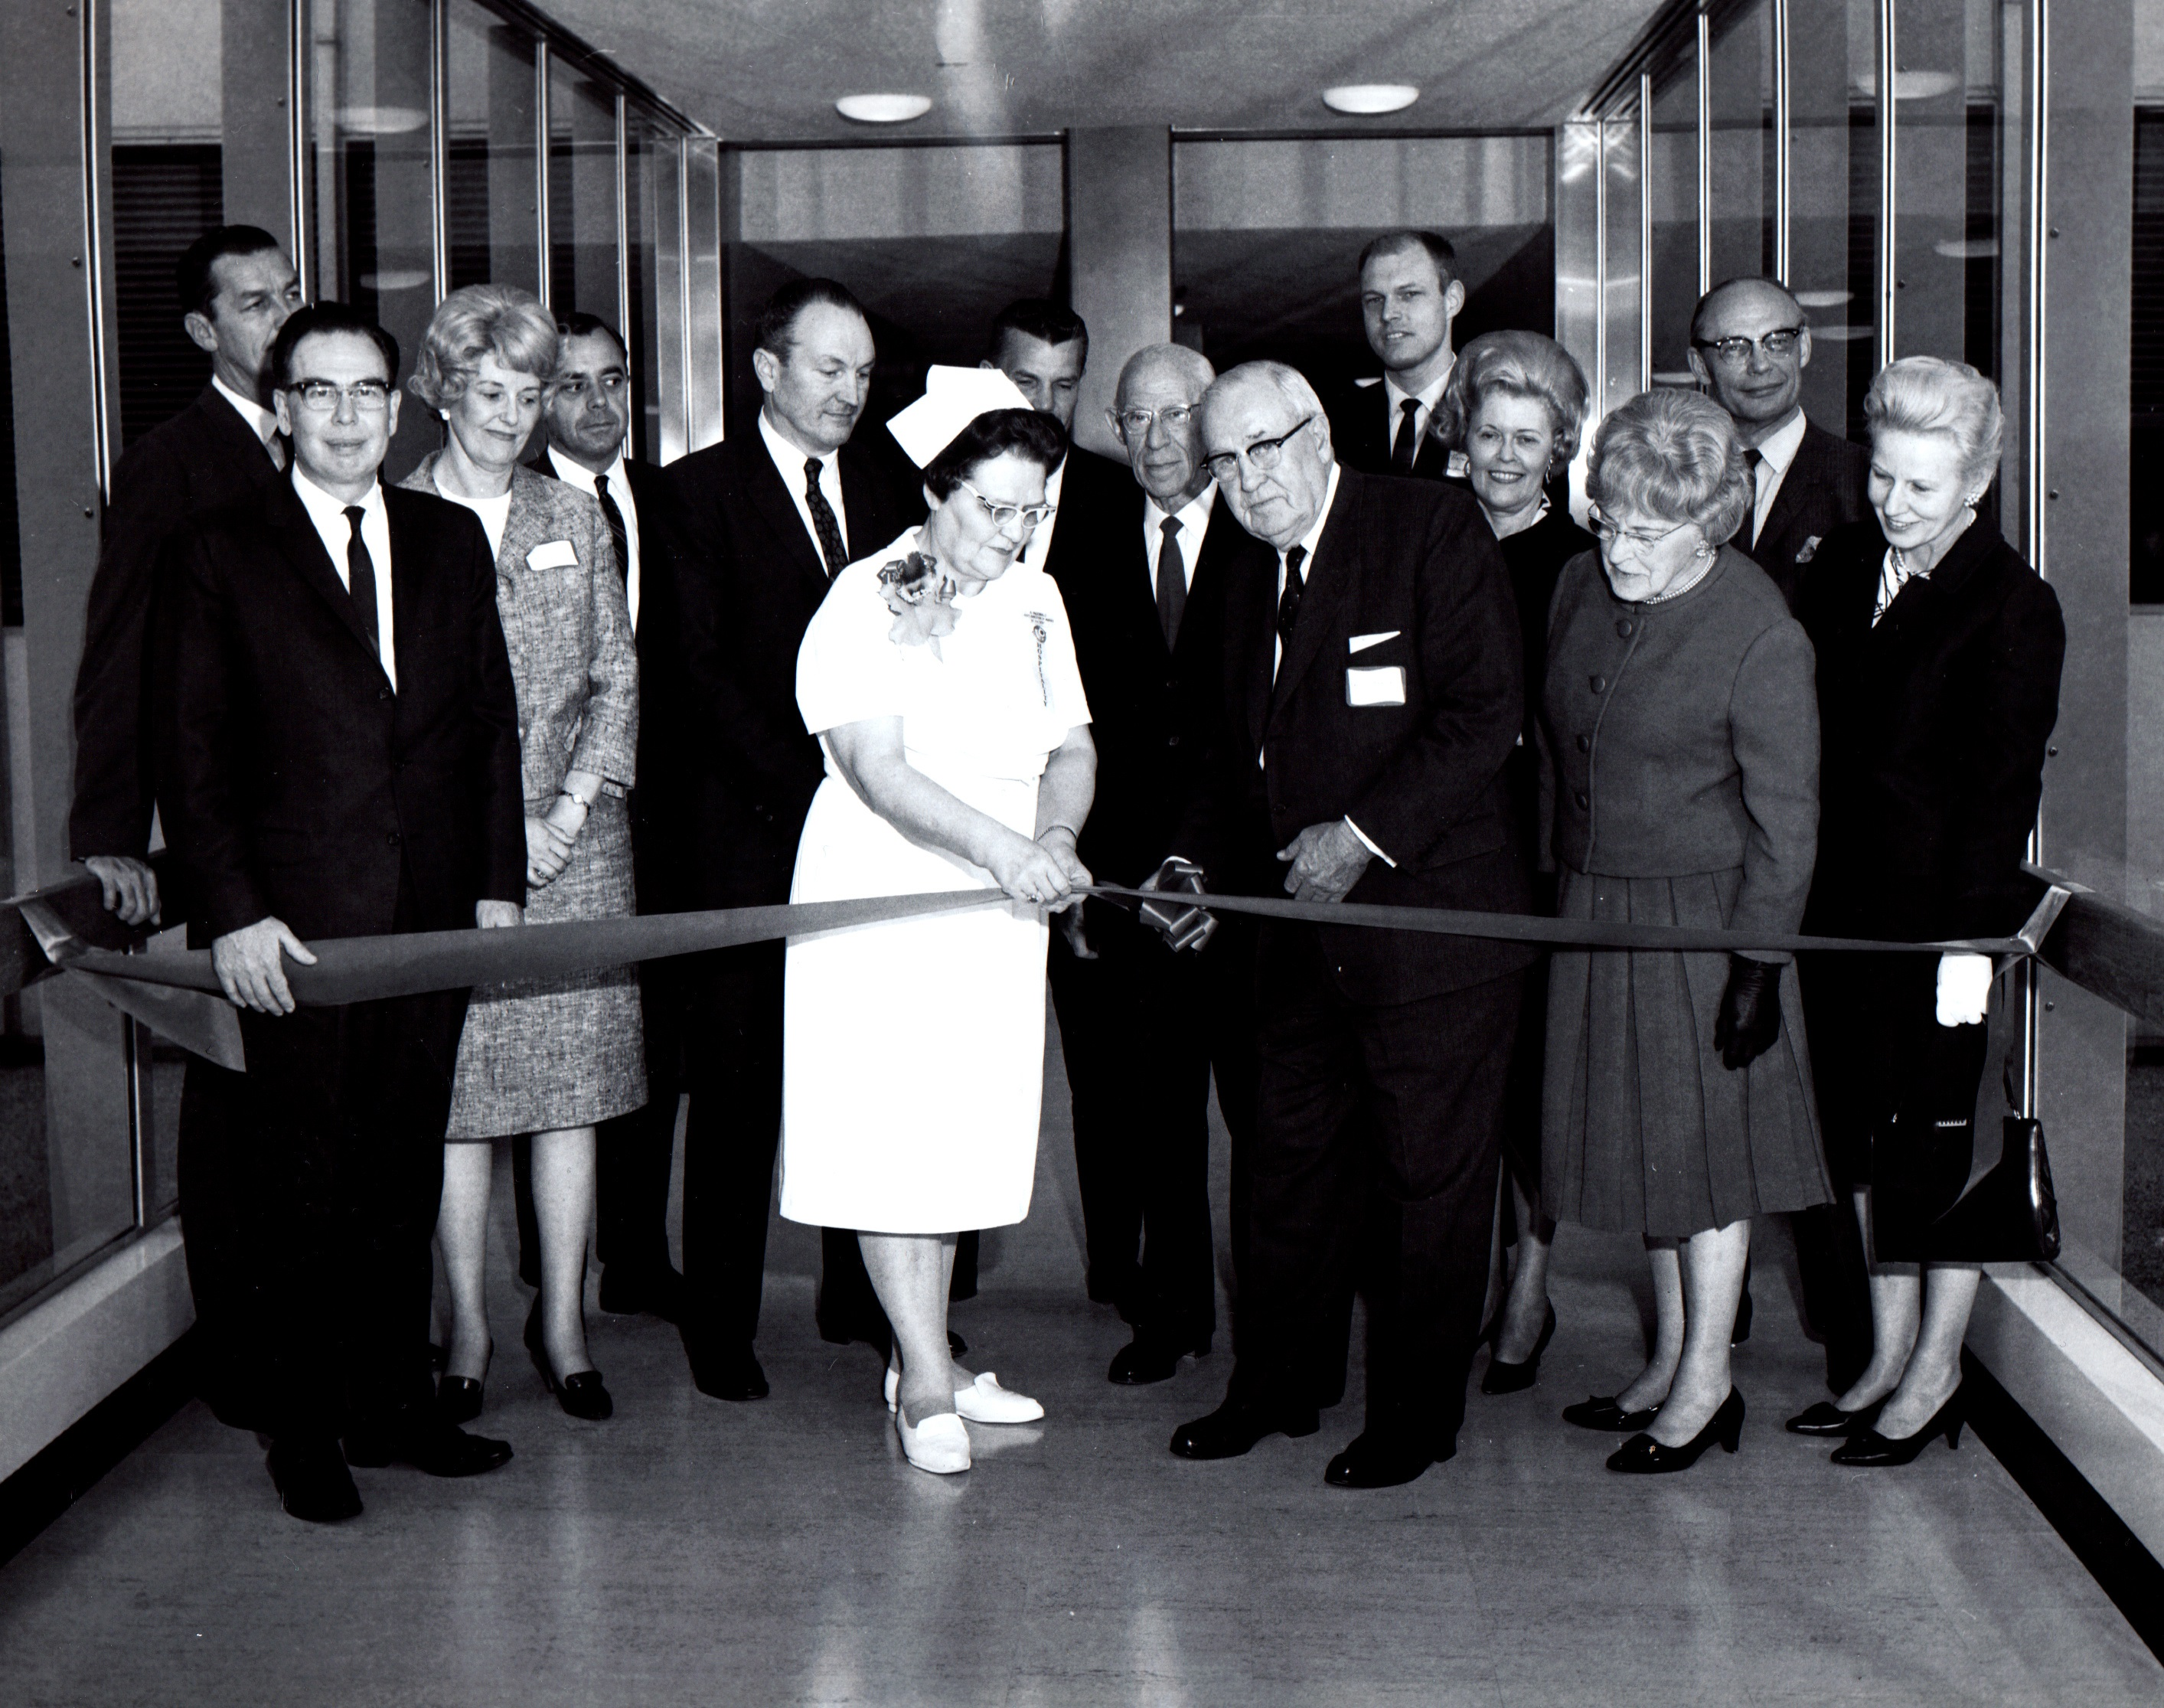 A nurse and group of dignitaries at a ribbon cutting